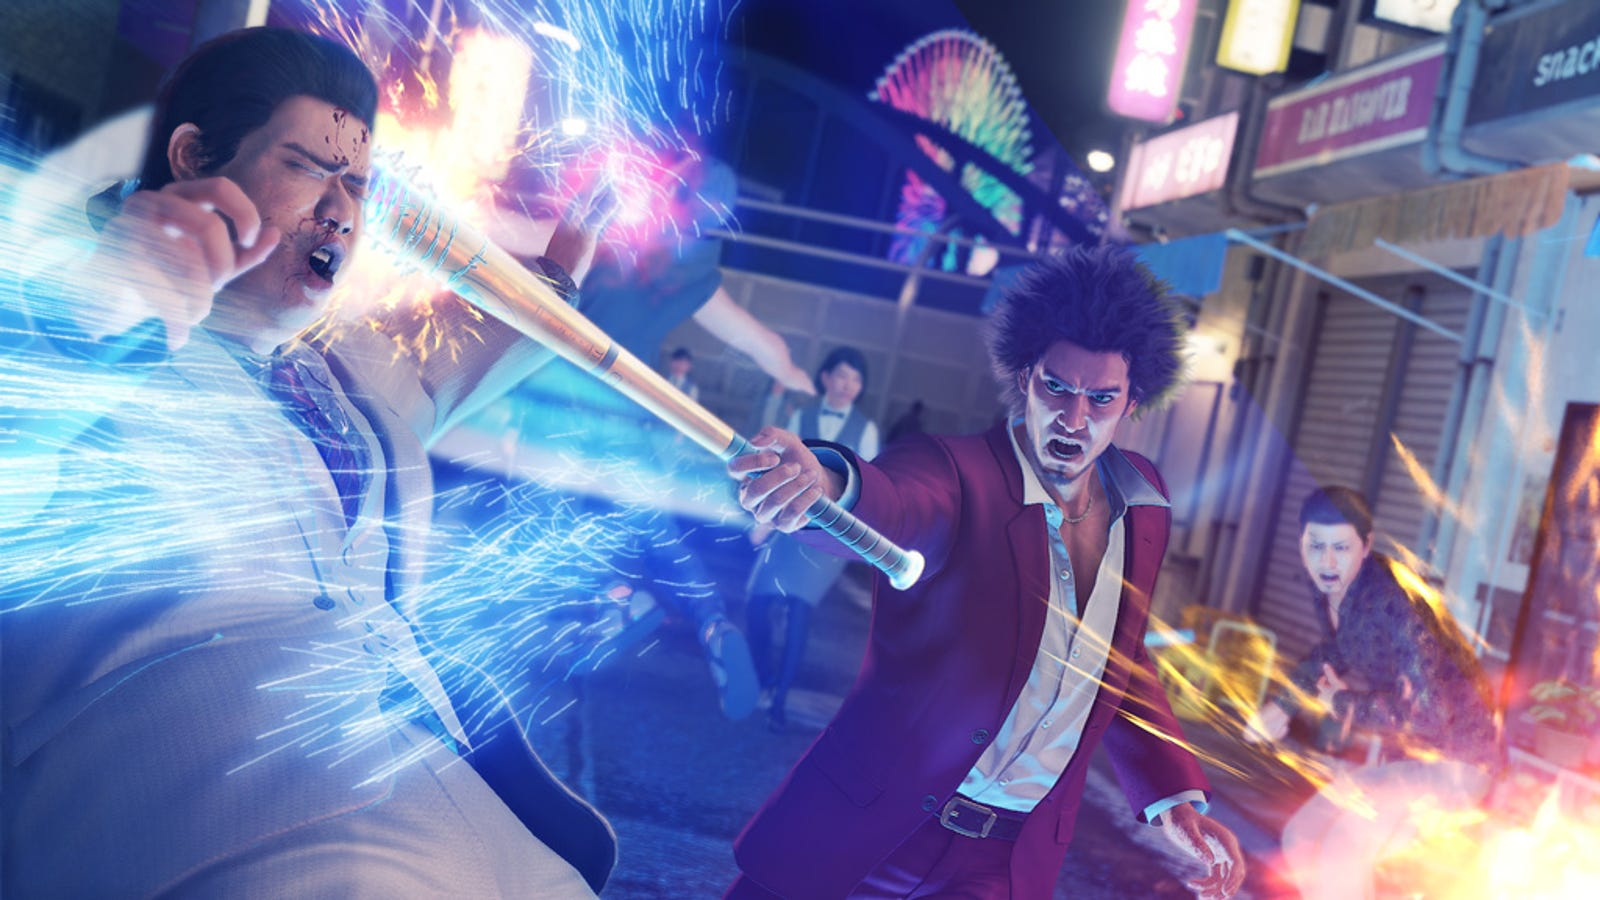 Yakuza 7 Announced, Ditches Action Combat For JRPG Battles